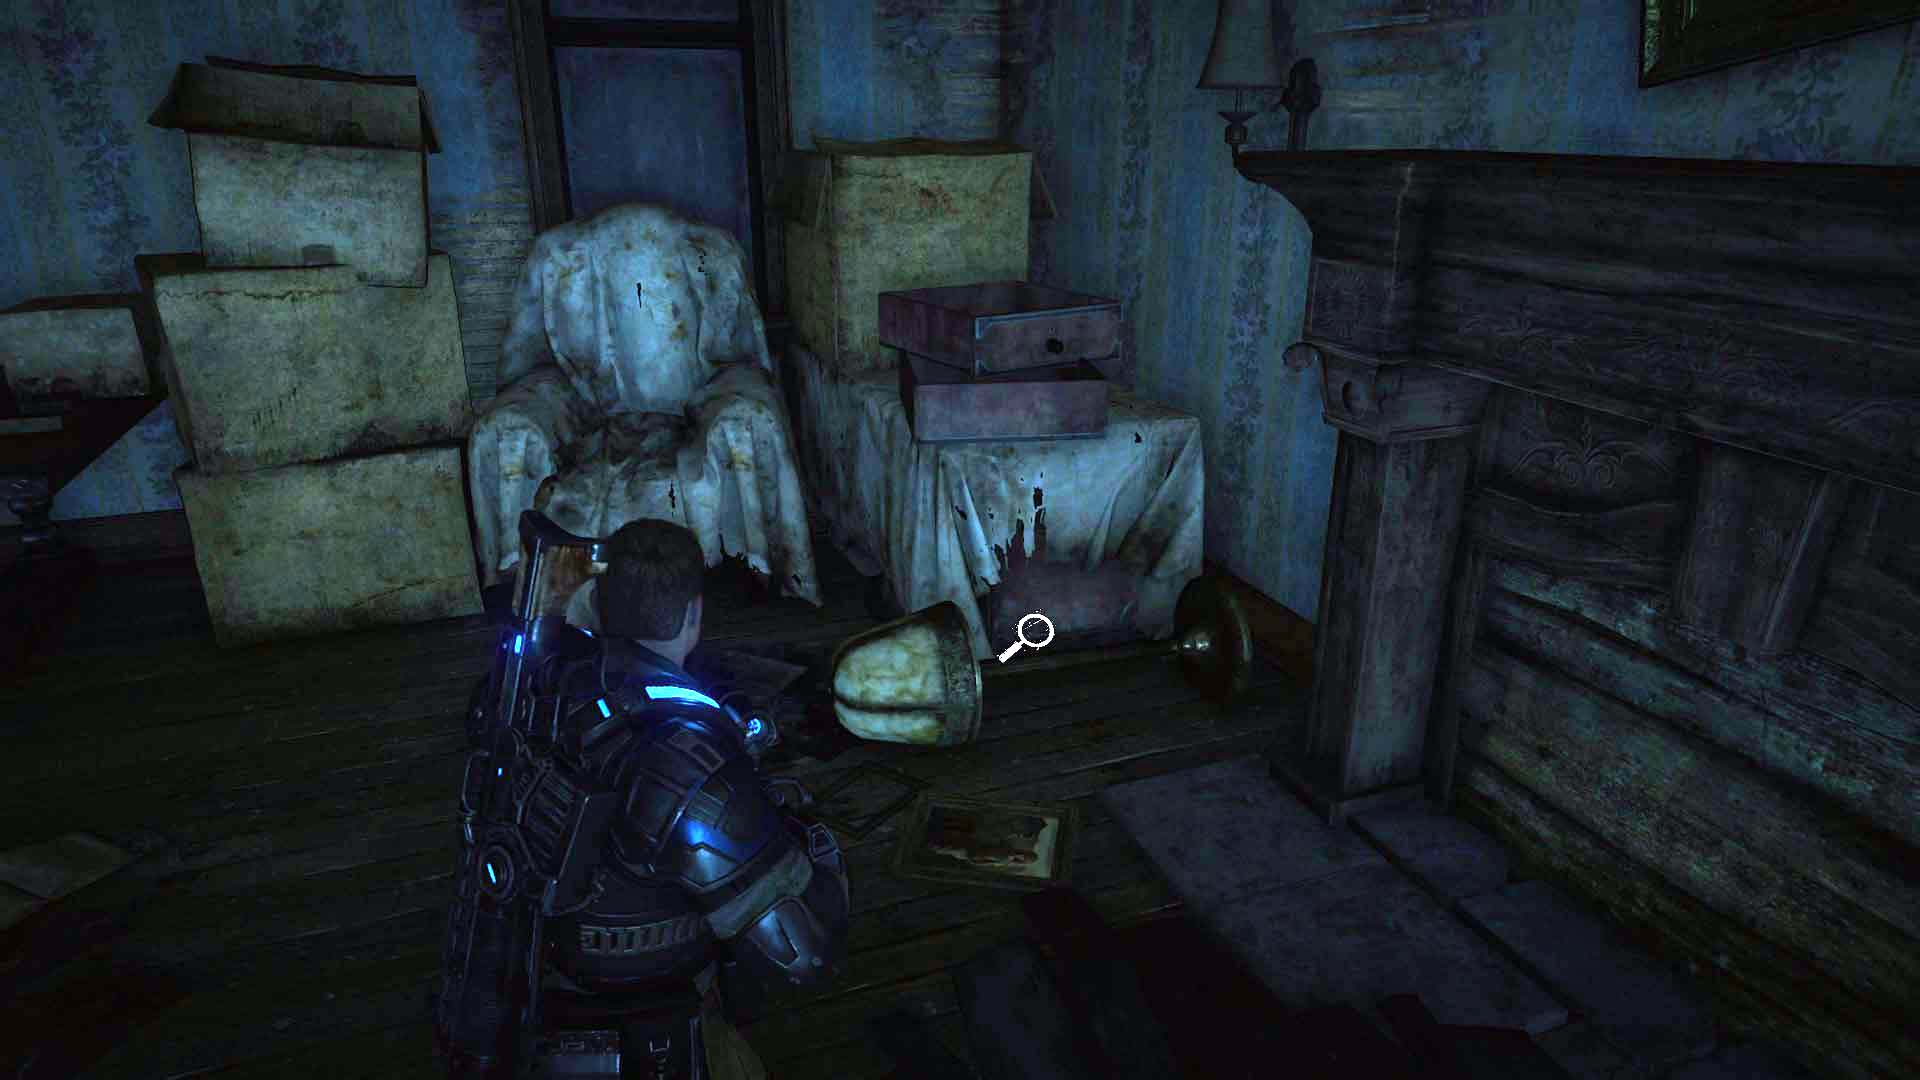 gears of war 2 collectibles guide